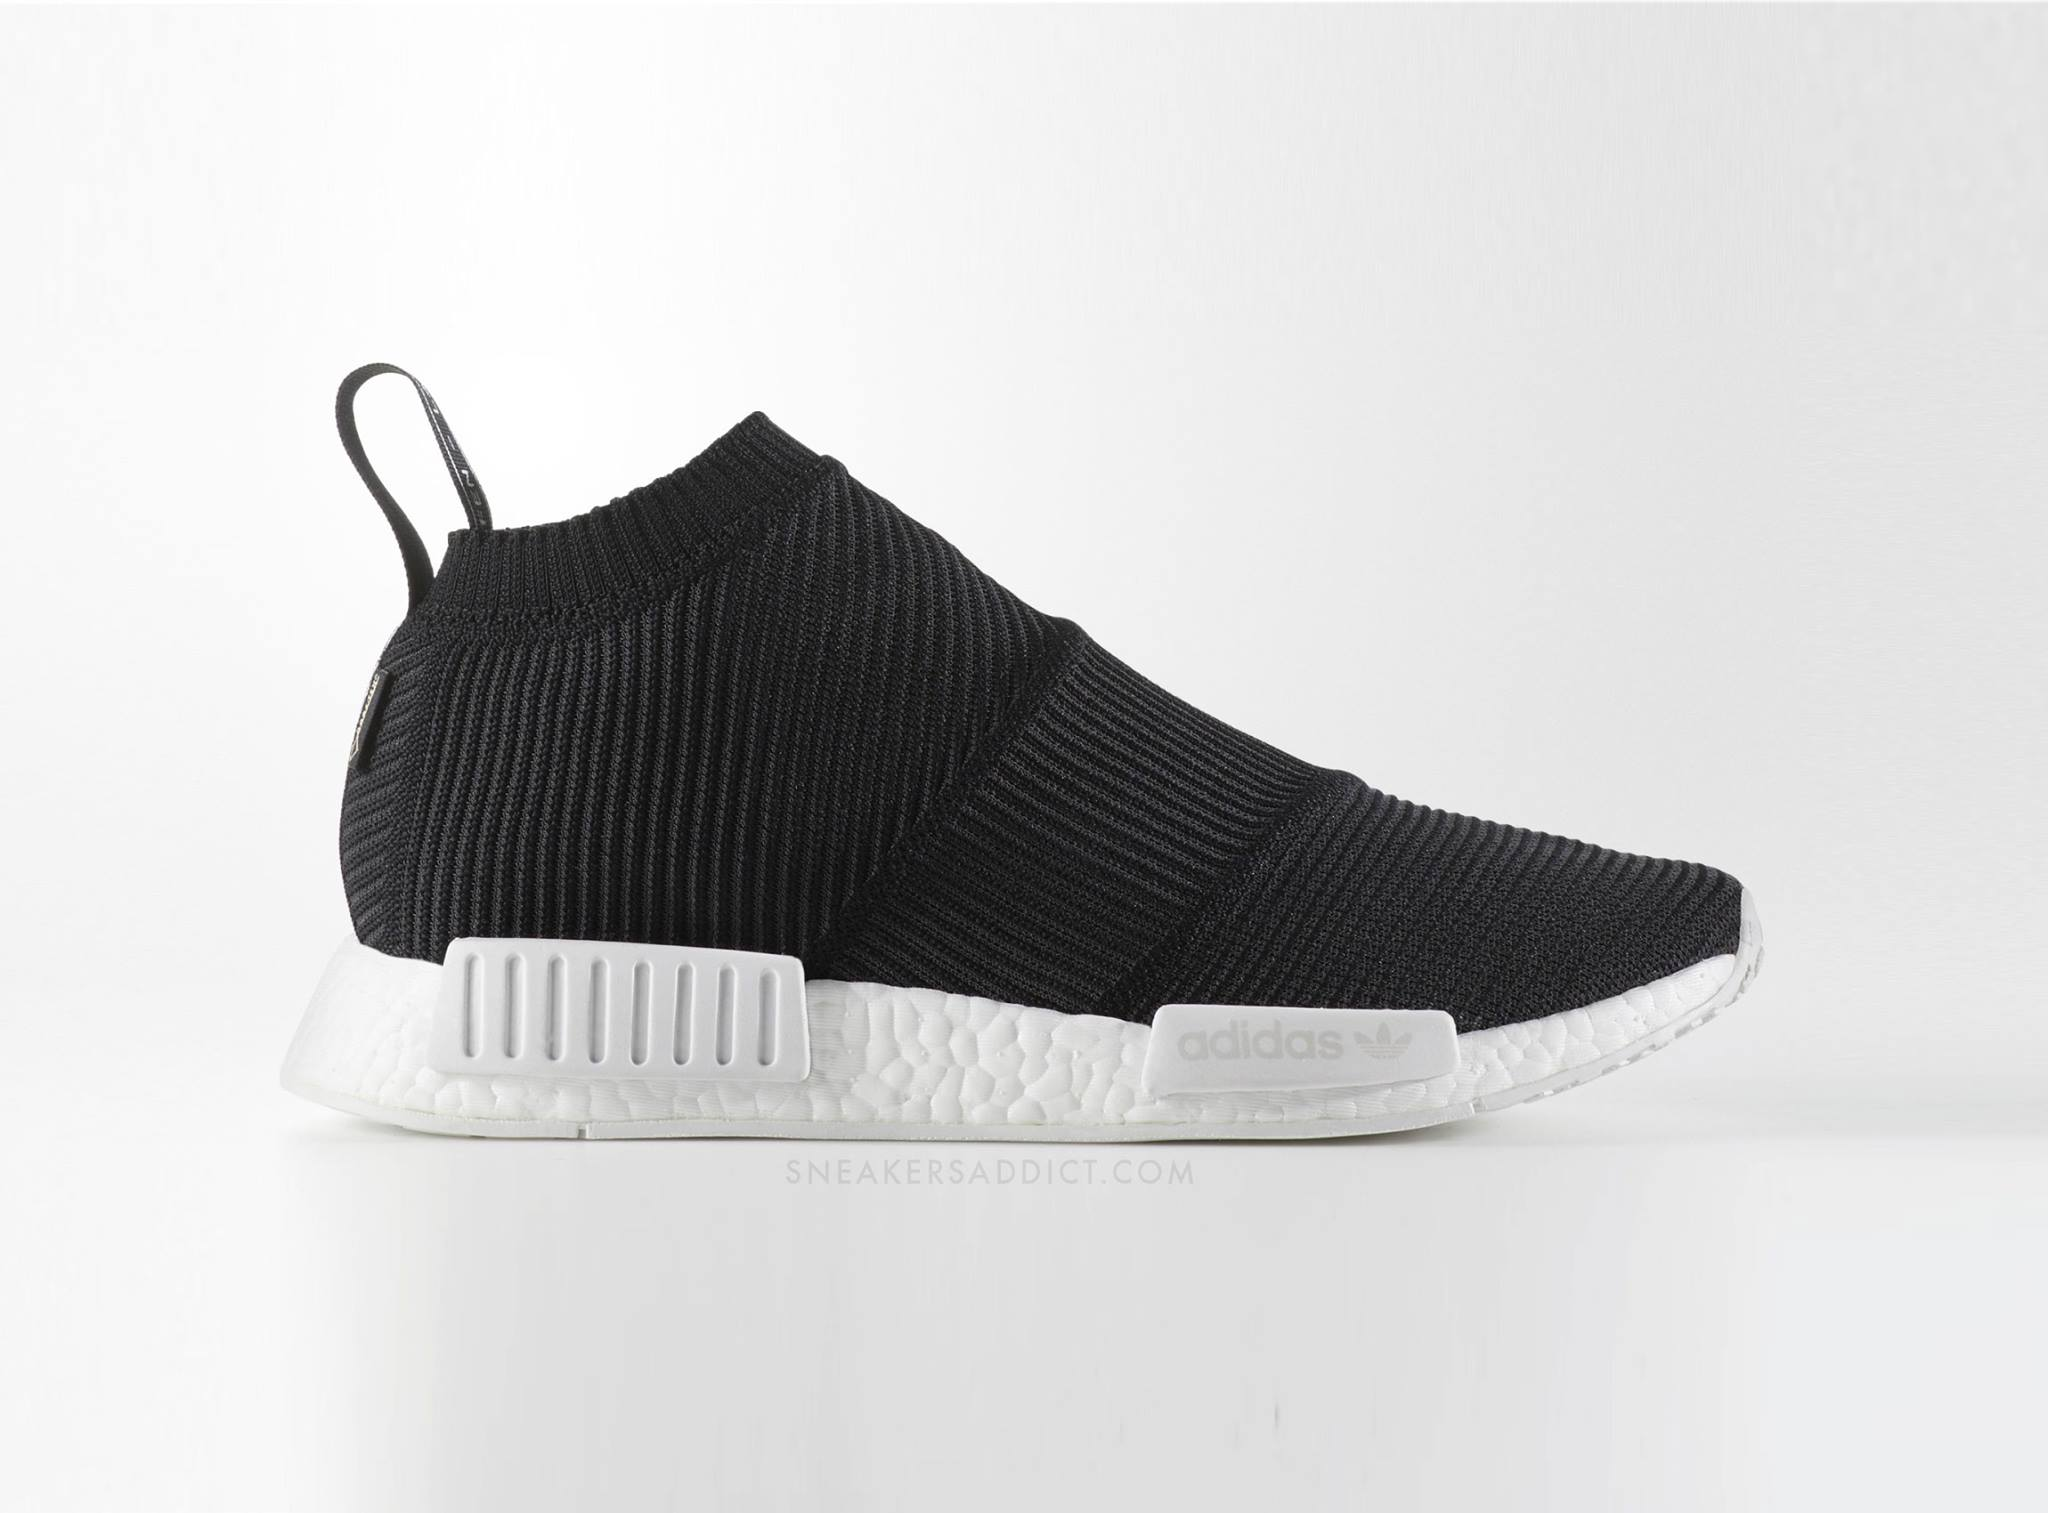 adidas nmd cs1 gore tex sneakers addict. Black Bedroom Furniture Sets. Home Design Ideas